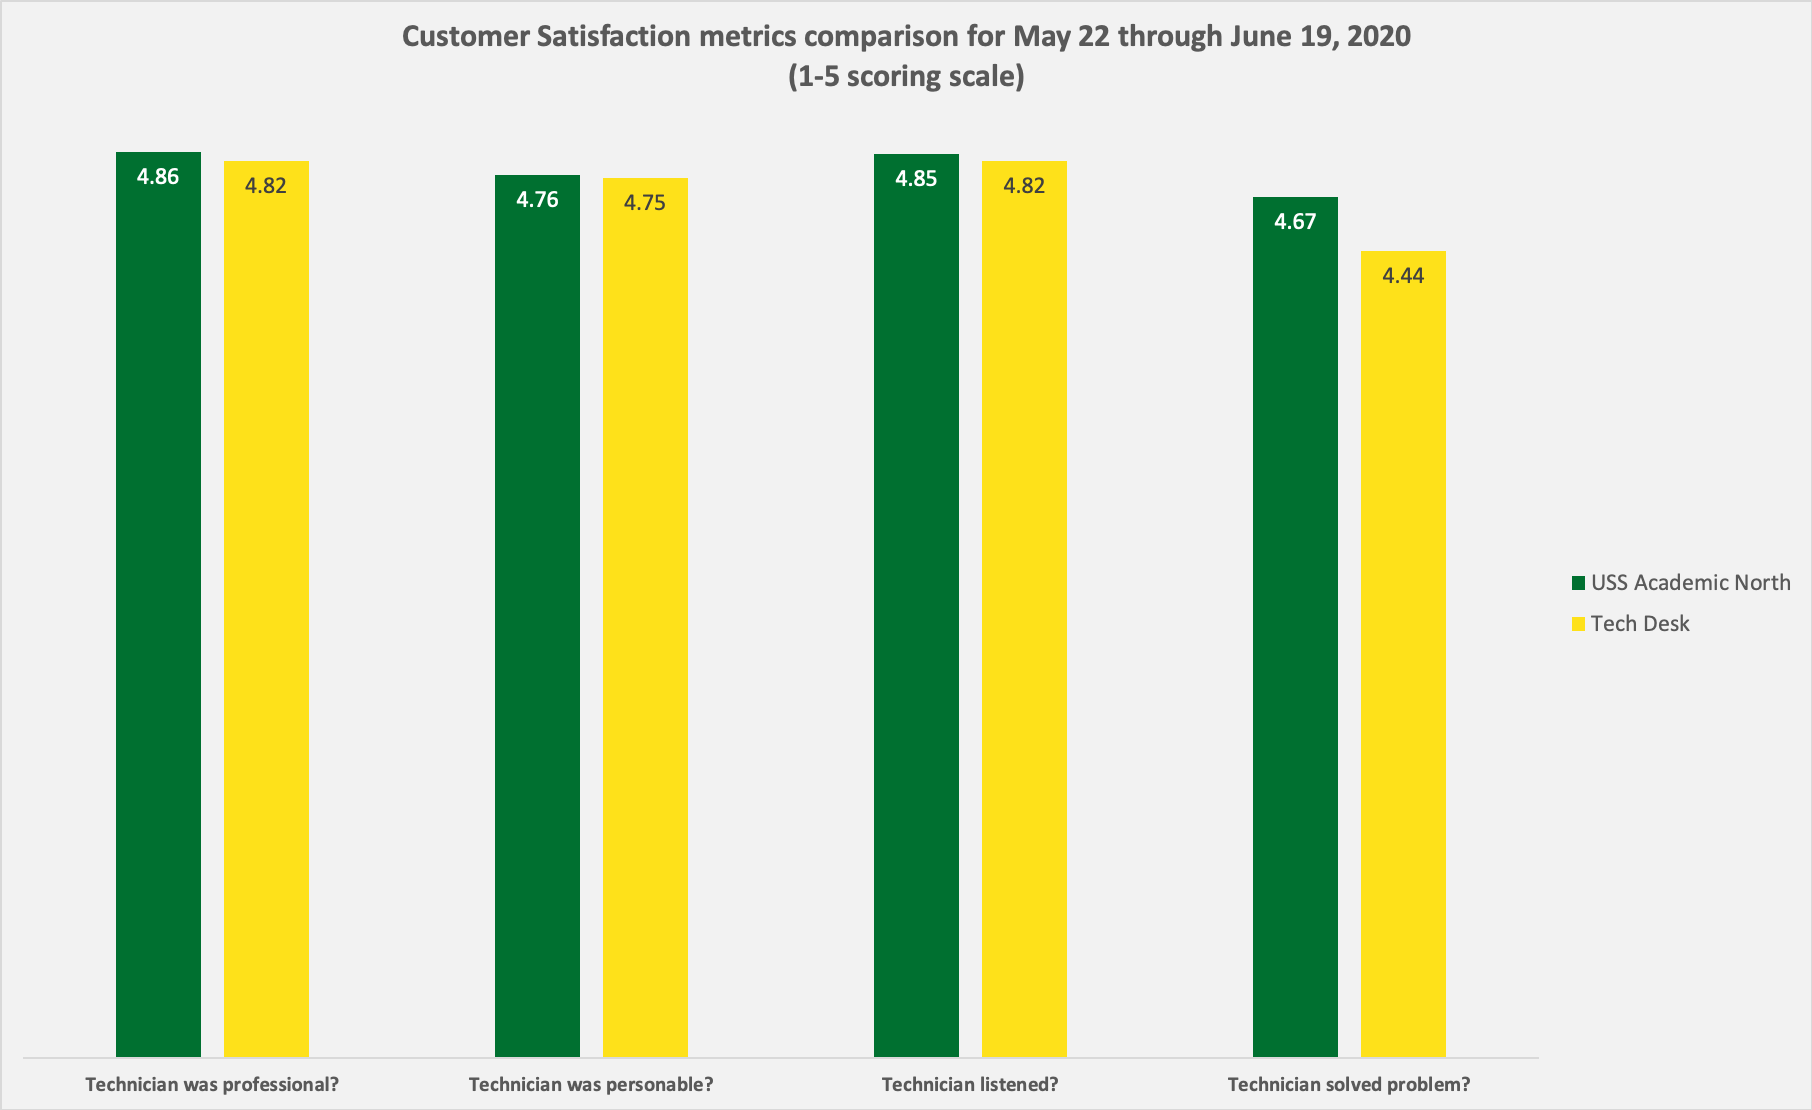 Column chart that shows customer satisfaction metrics for USS Academic North compared to Tech Desk